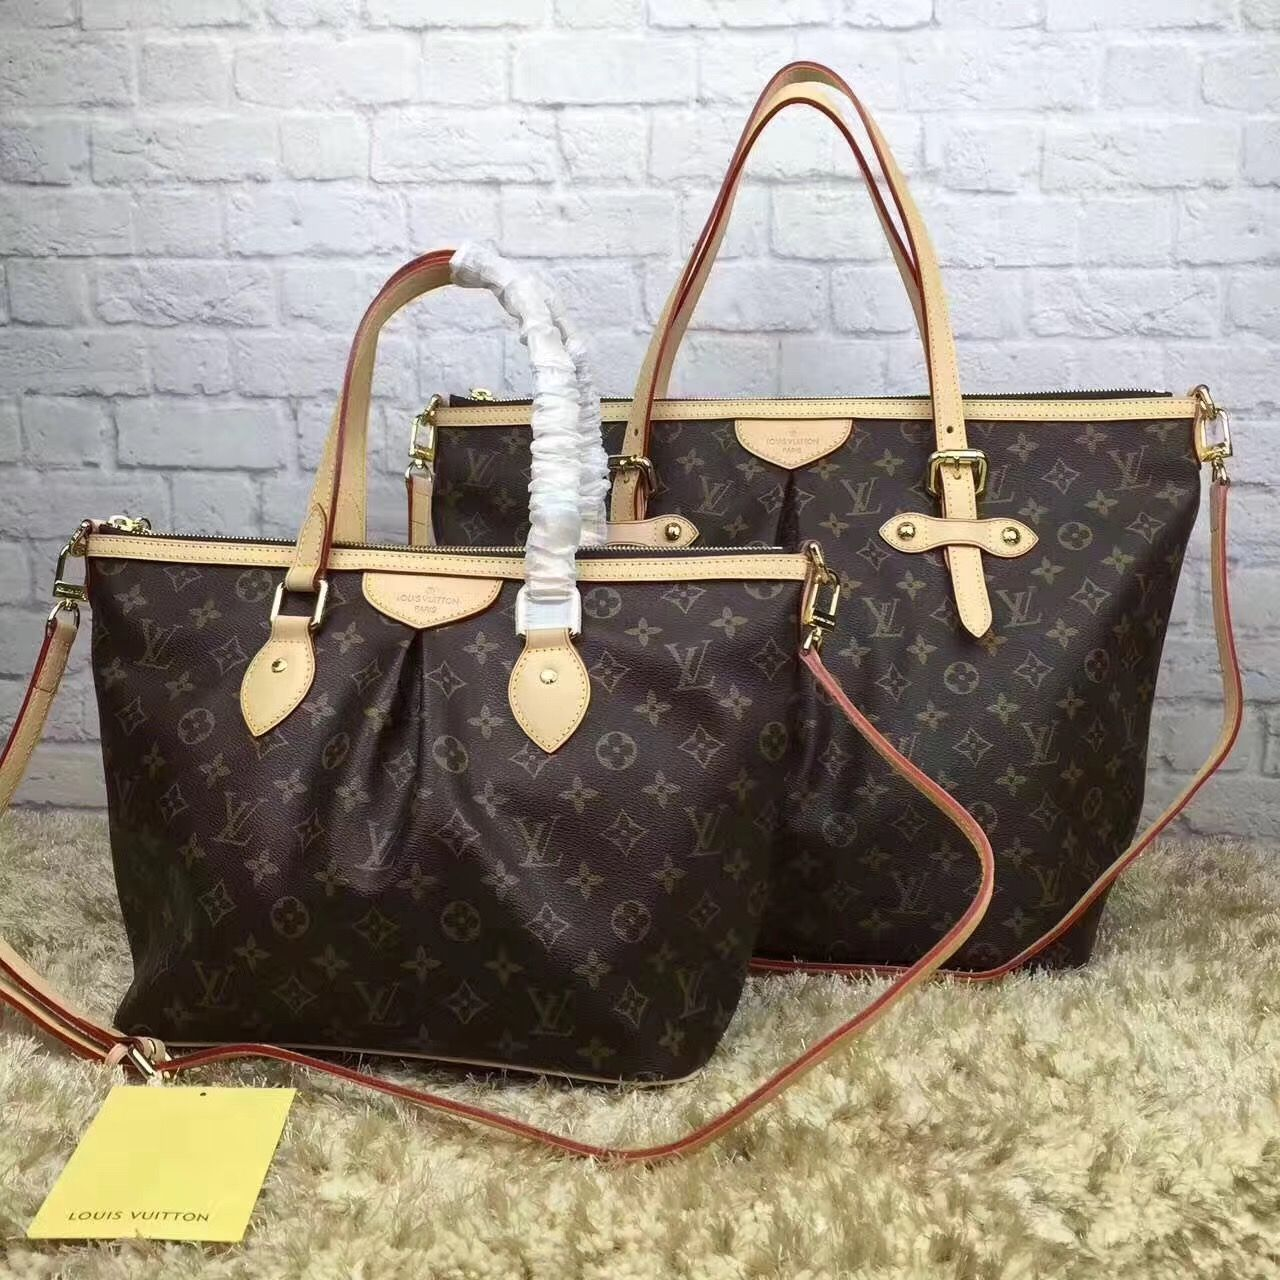 Louis Vuitton Tivoli Vs Palermo Louis Vuitton Lv Palermo Bag Mm Gm Everything Lv In 2019 Louis